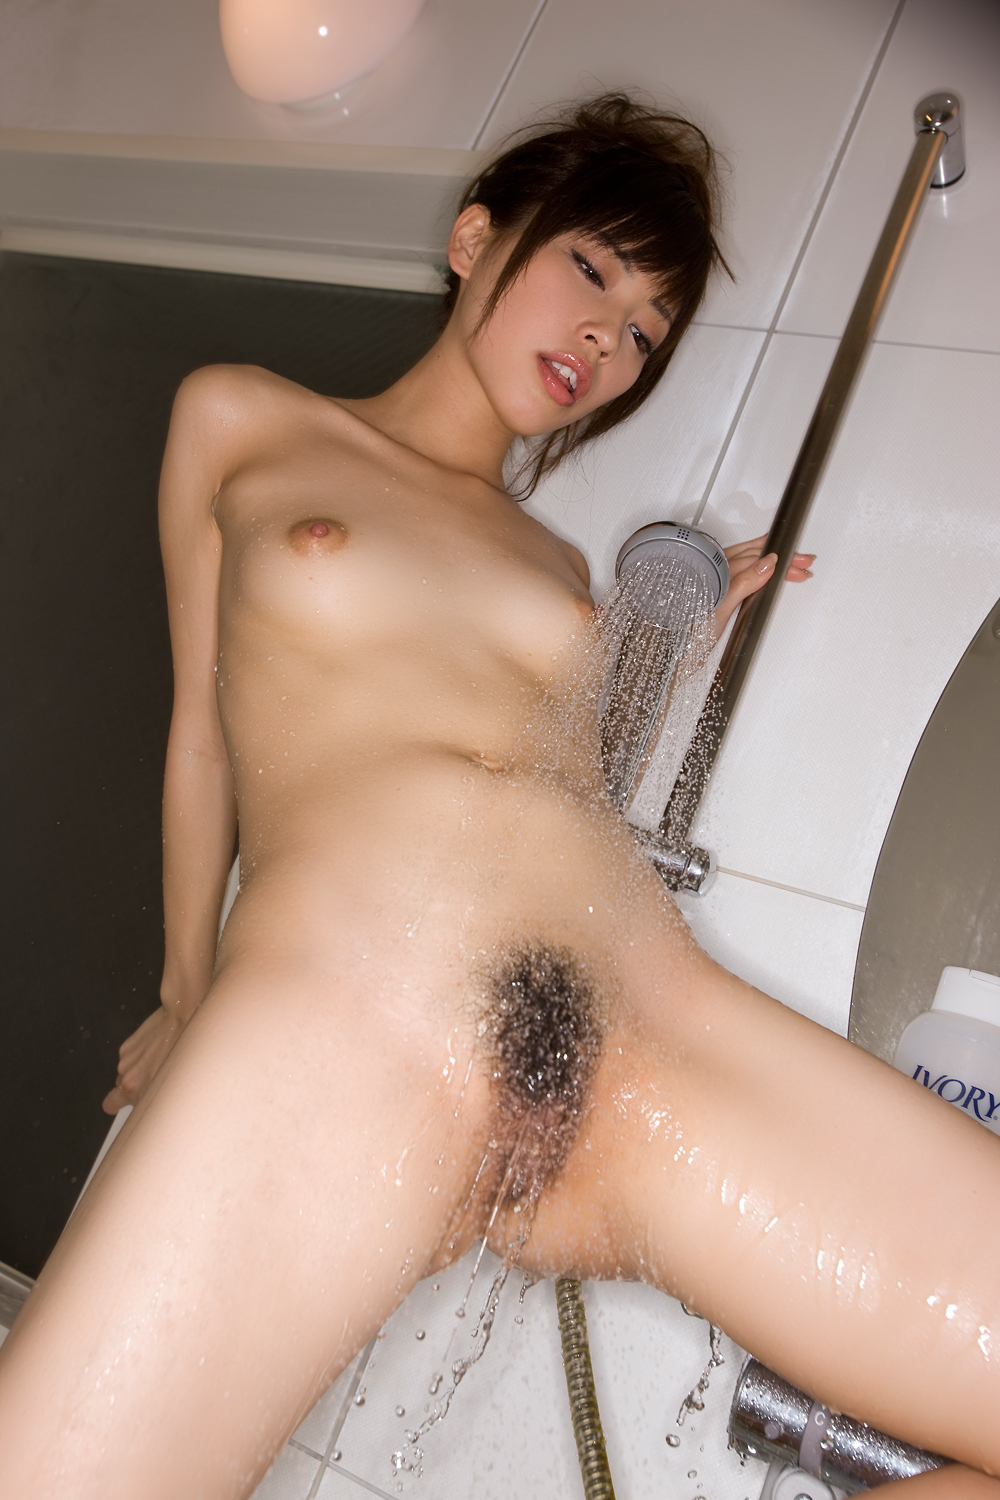 Favorite mine...FAV0425 uncensored jap wrong